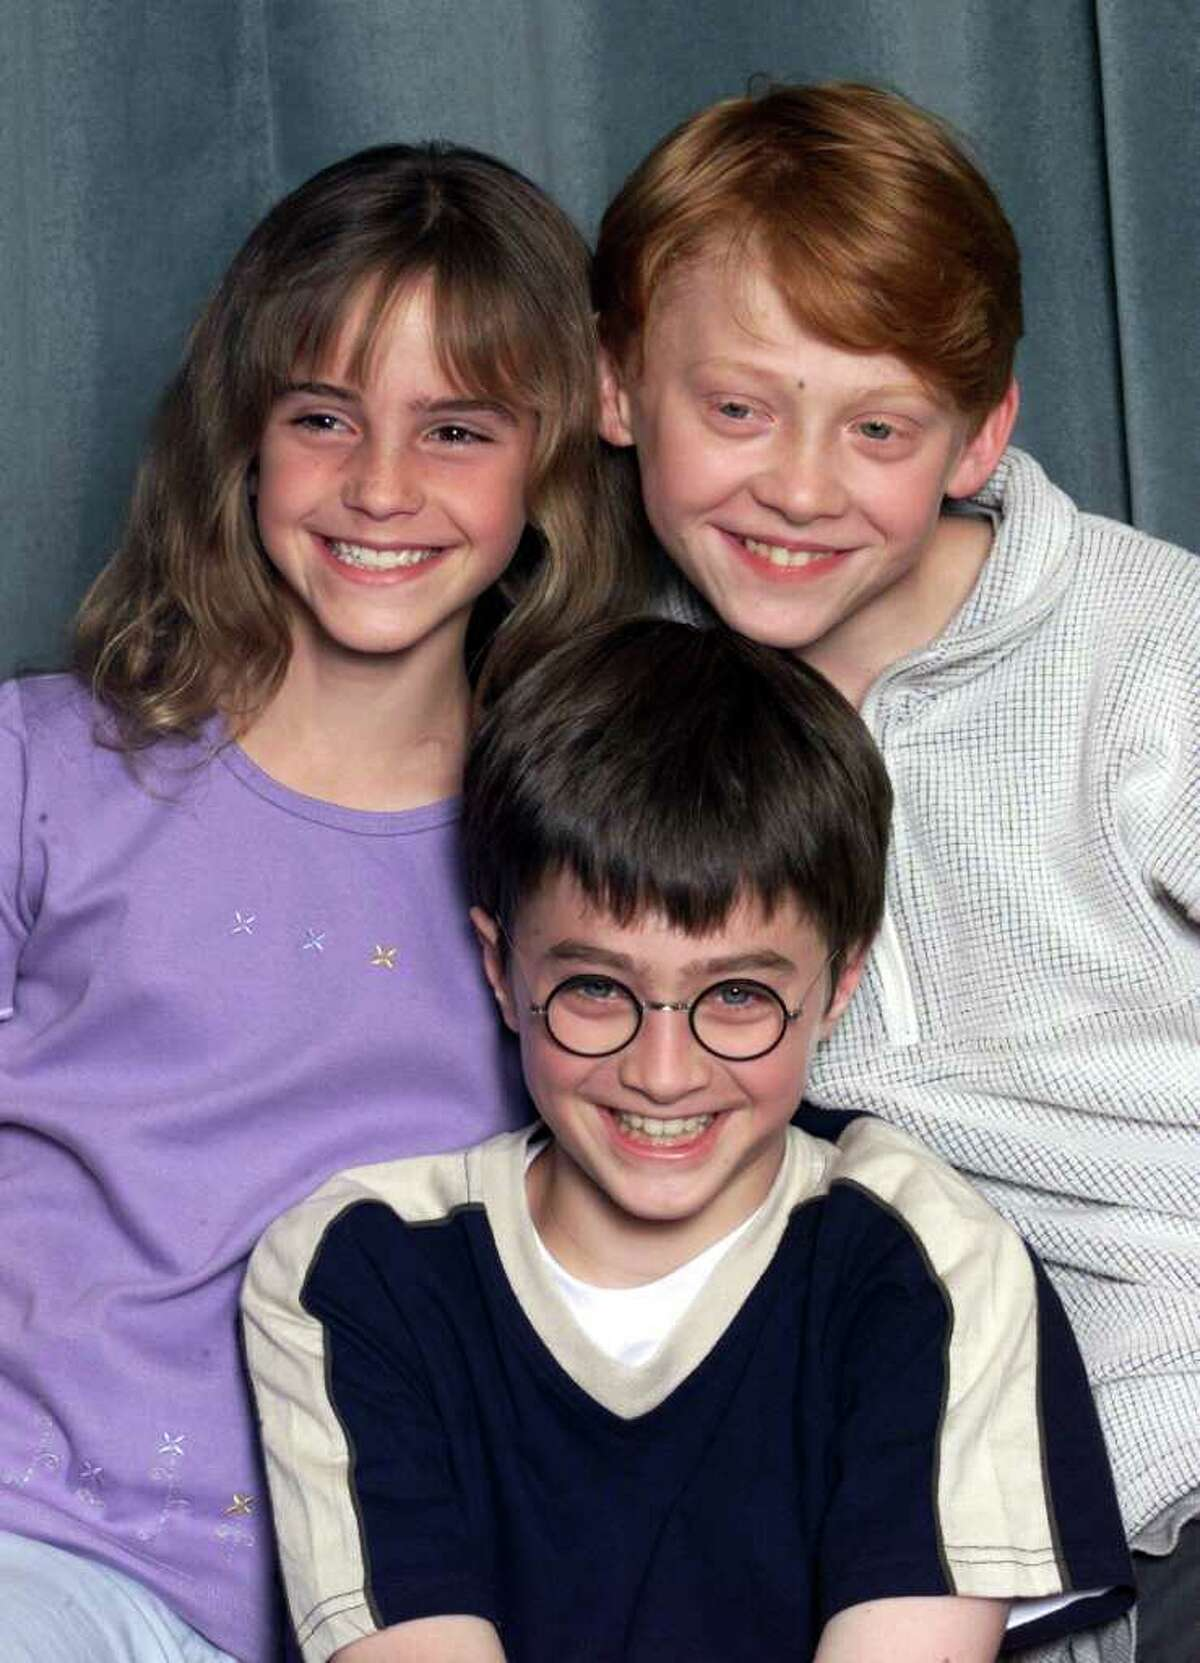 During a decade of filming, the stars of Harry Potter have gone from precocious pre-teens to sexy stars. The final film premieres in the U.S. July 15. Here, actors Emma Watson (L), Daniel Radcliffe (C) and Rupert Grint (R) attend a press conference for the movie